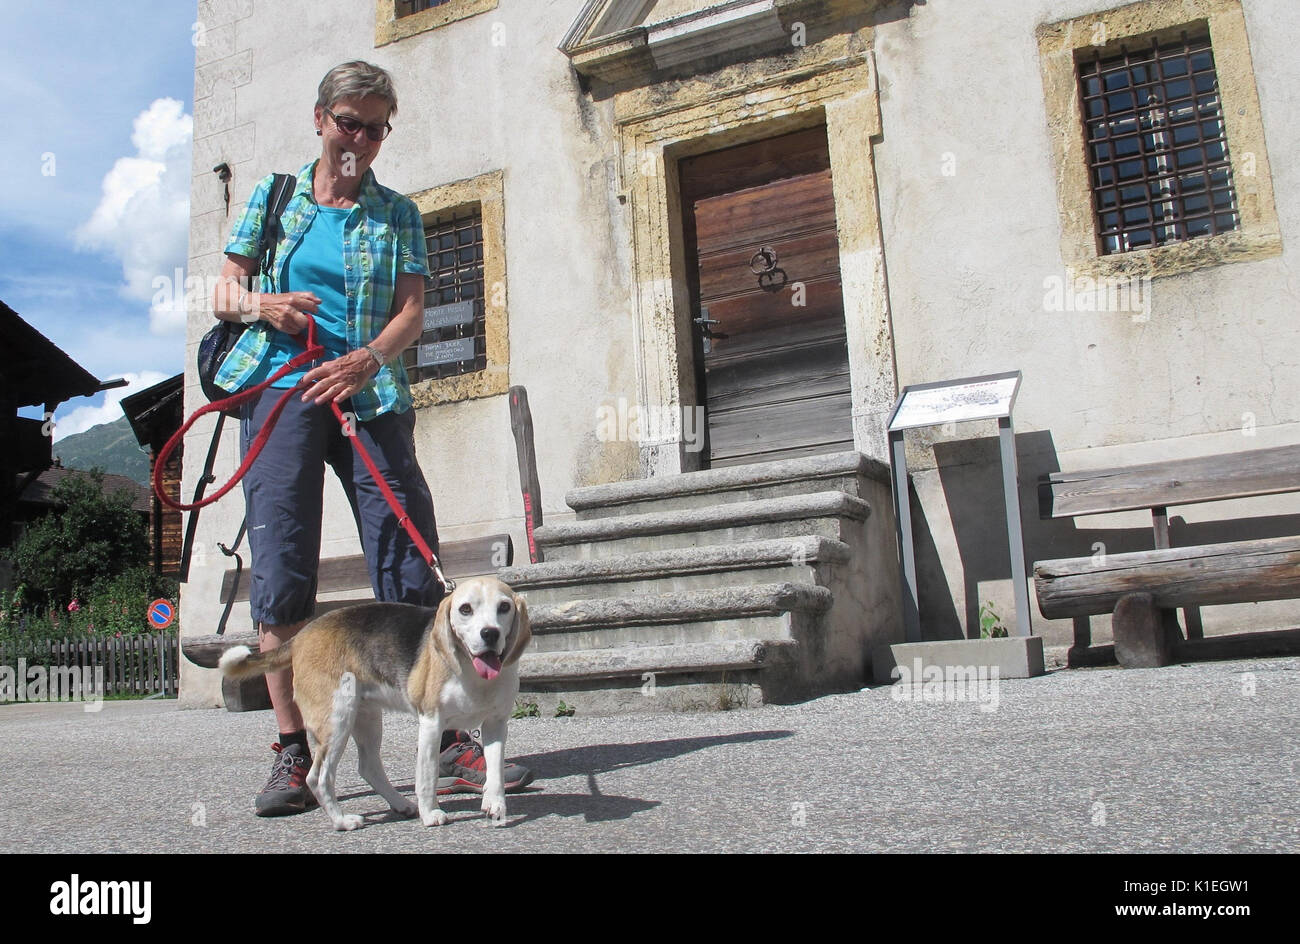 Wallis, Switzerland. 17th July, 2017. Ursula von Matt with her dog Selena in Ernen in the canton of Wallis, Switzerland, 17 July 2017. Picking up one's own dog's waste is par for the course even in fields, meadows and hiking trails in Switzerland. Photo: Christiane Oelrich/dpa/Alamy Live News - Stock Image